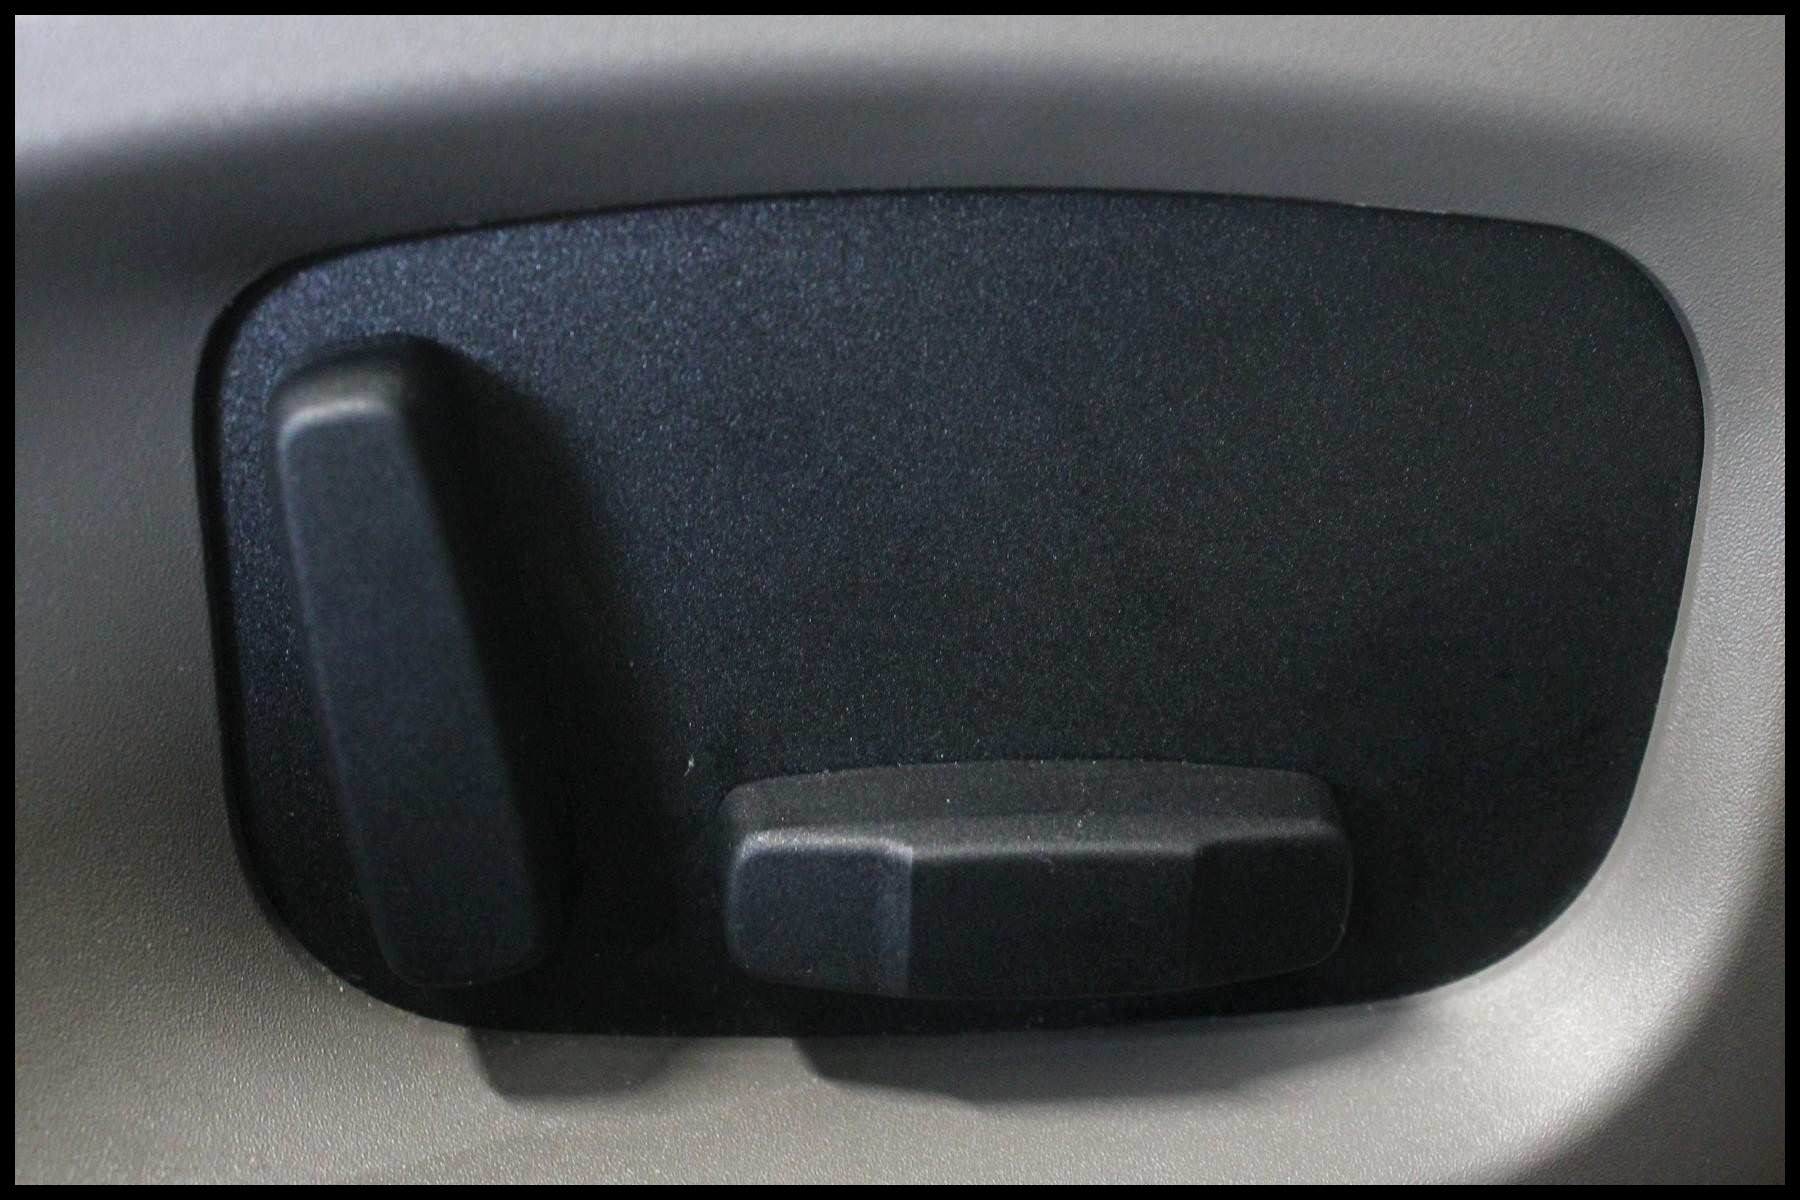 1999 toyota Camry Door Handle Luxury 50 Inspirational Exterior Car Door Handle Repair Cost 50